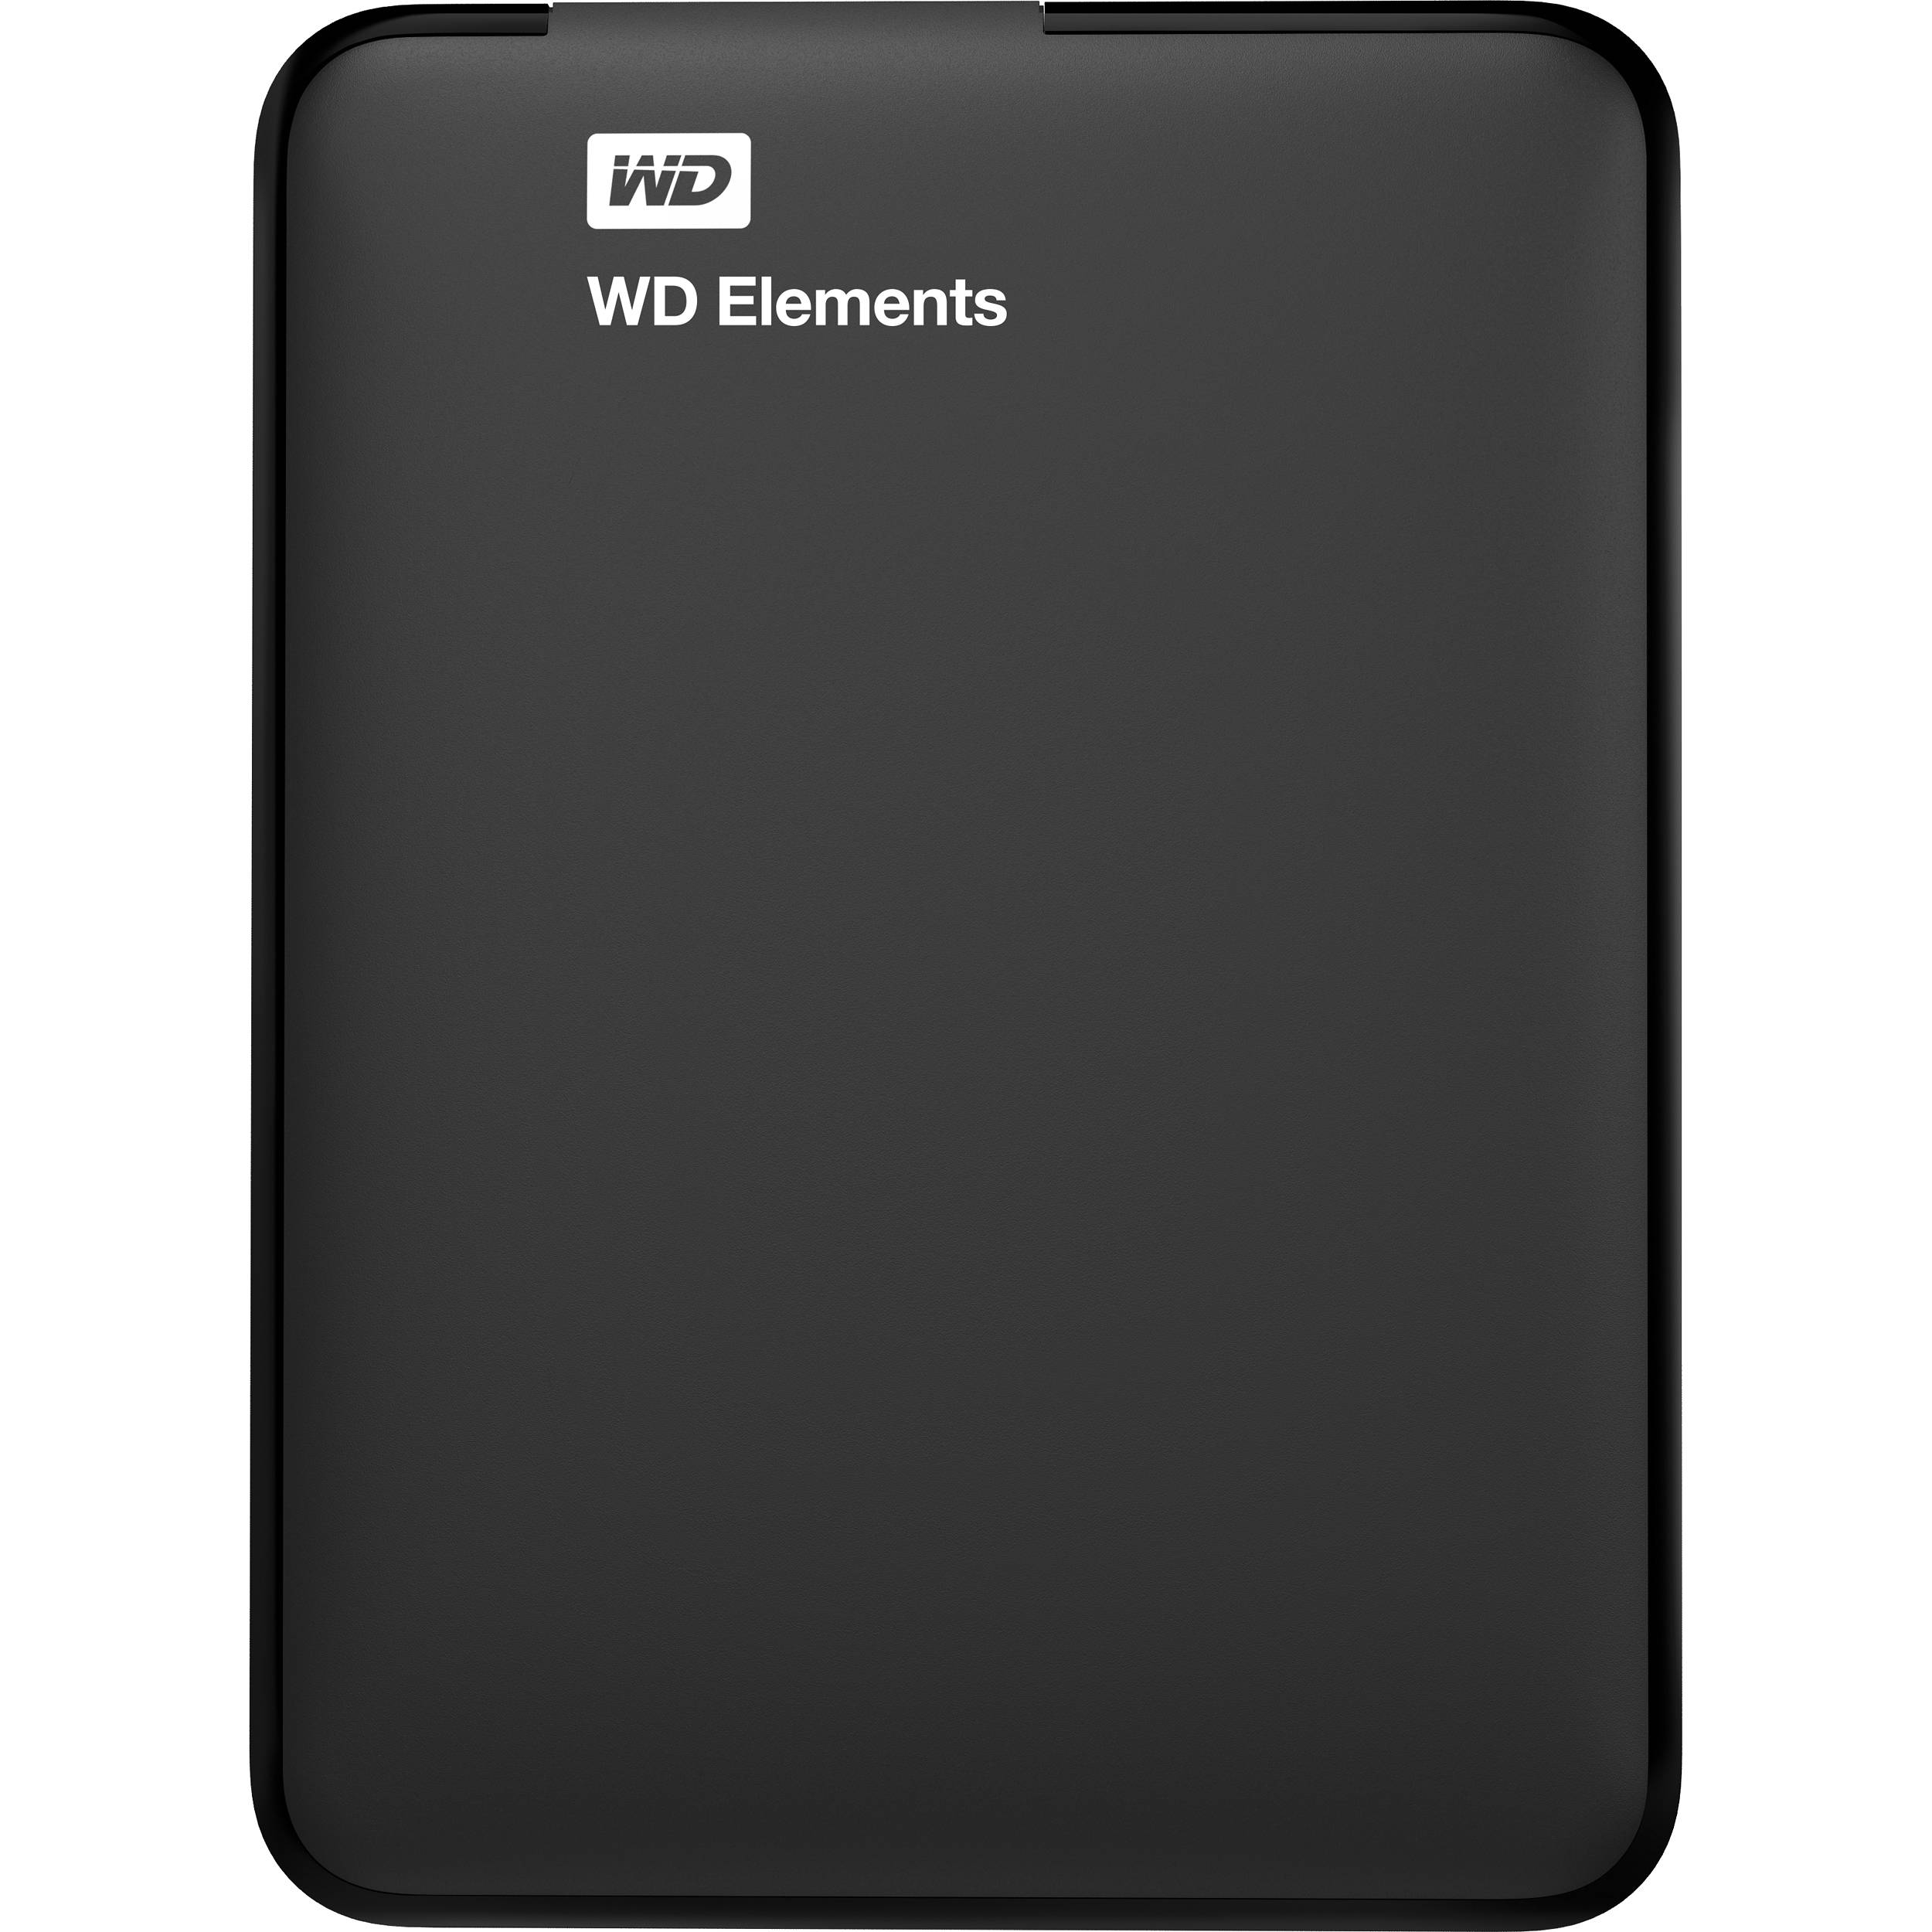 Wd 1tb Elements Portable Hard Drive Wdbuzg0010bbk Nesn B Amp H